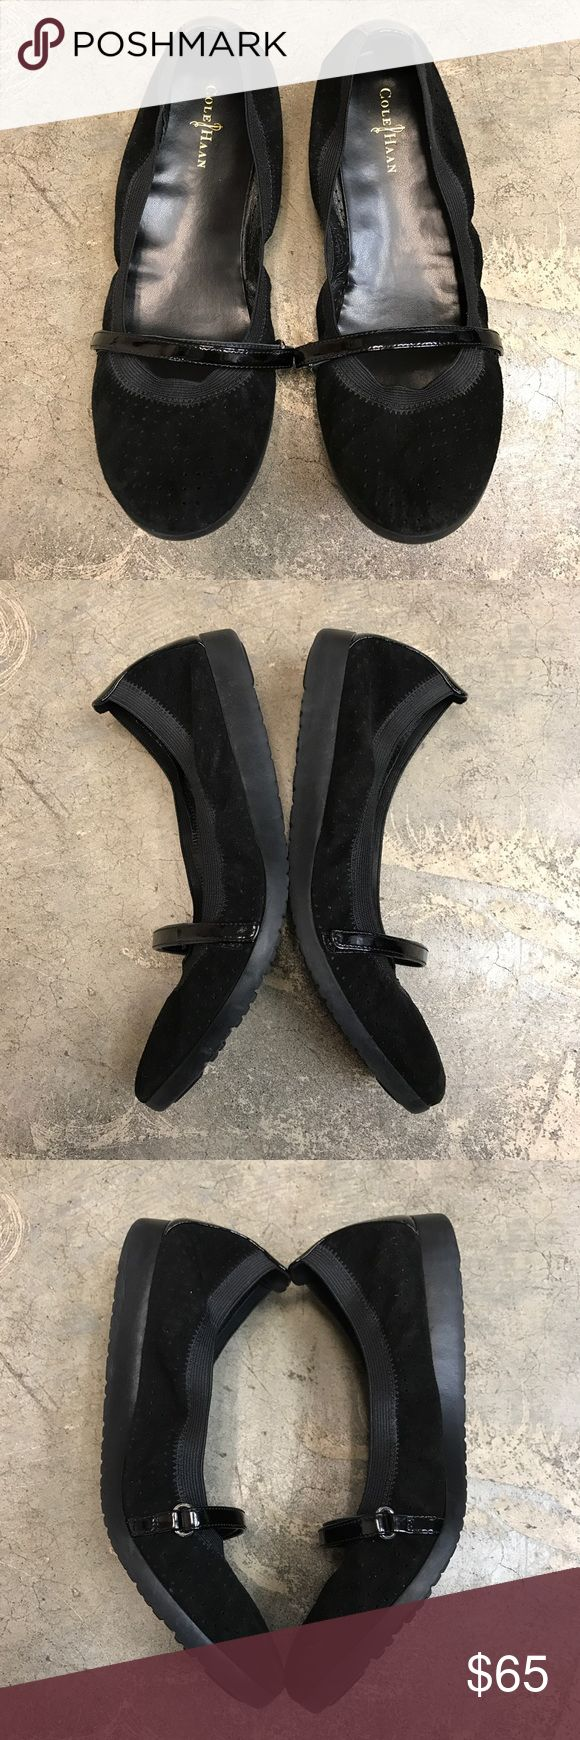 Cole Haan Black Flats Scrunchy style classic flats! They have a nice patent leather Velcro strap across the top. NWOT excellent condition! Cole Haan Shoes Flats & Loafers